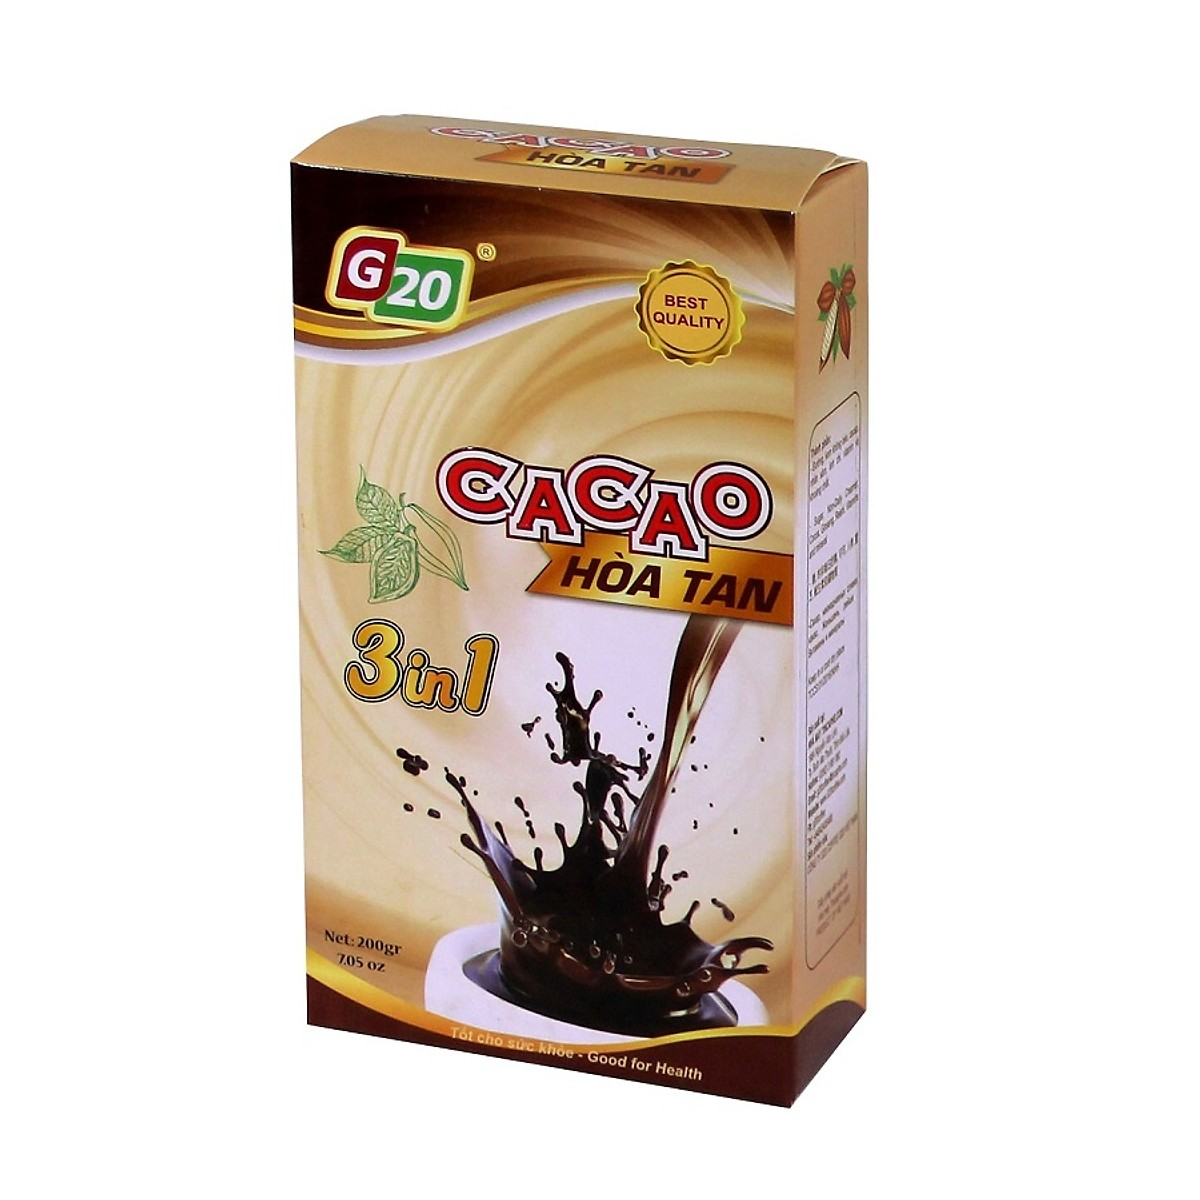 G20 CACAO HÒA TAN 3IN1